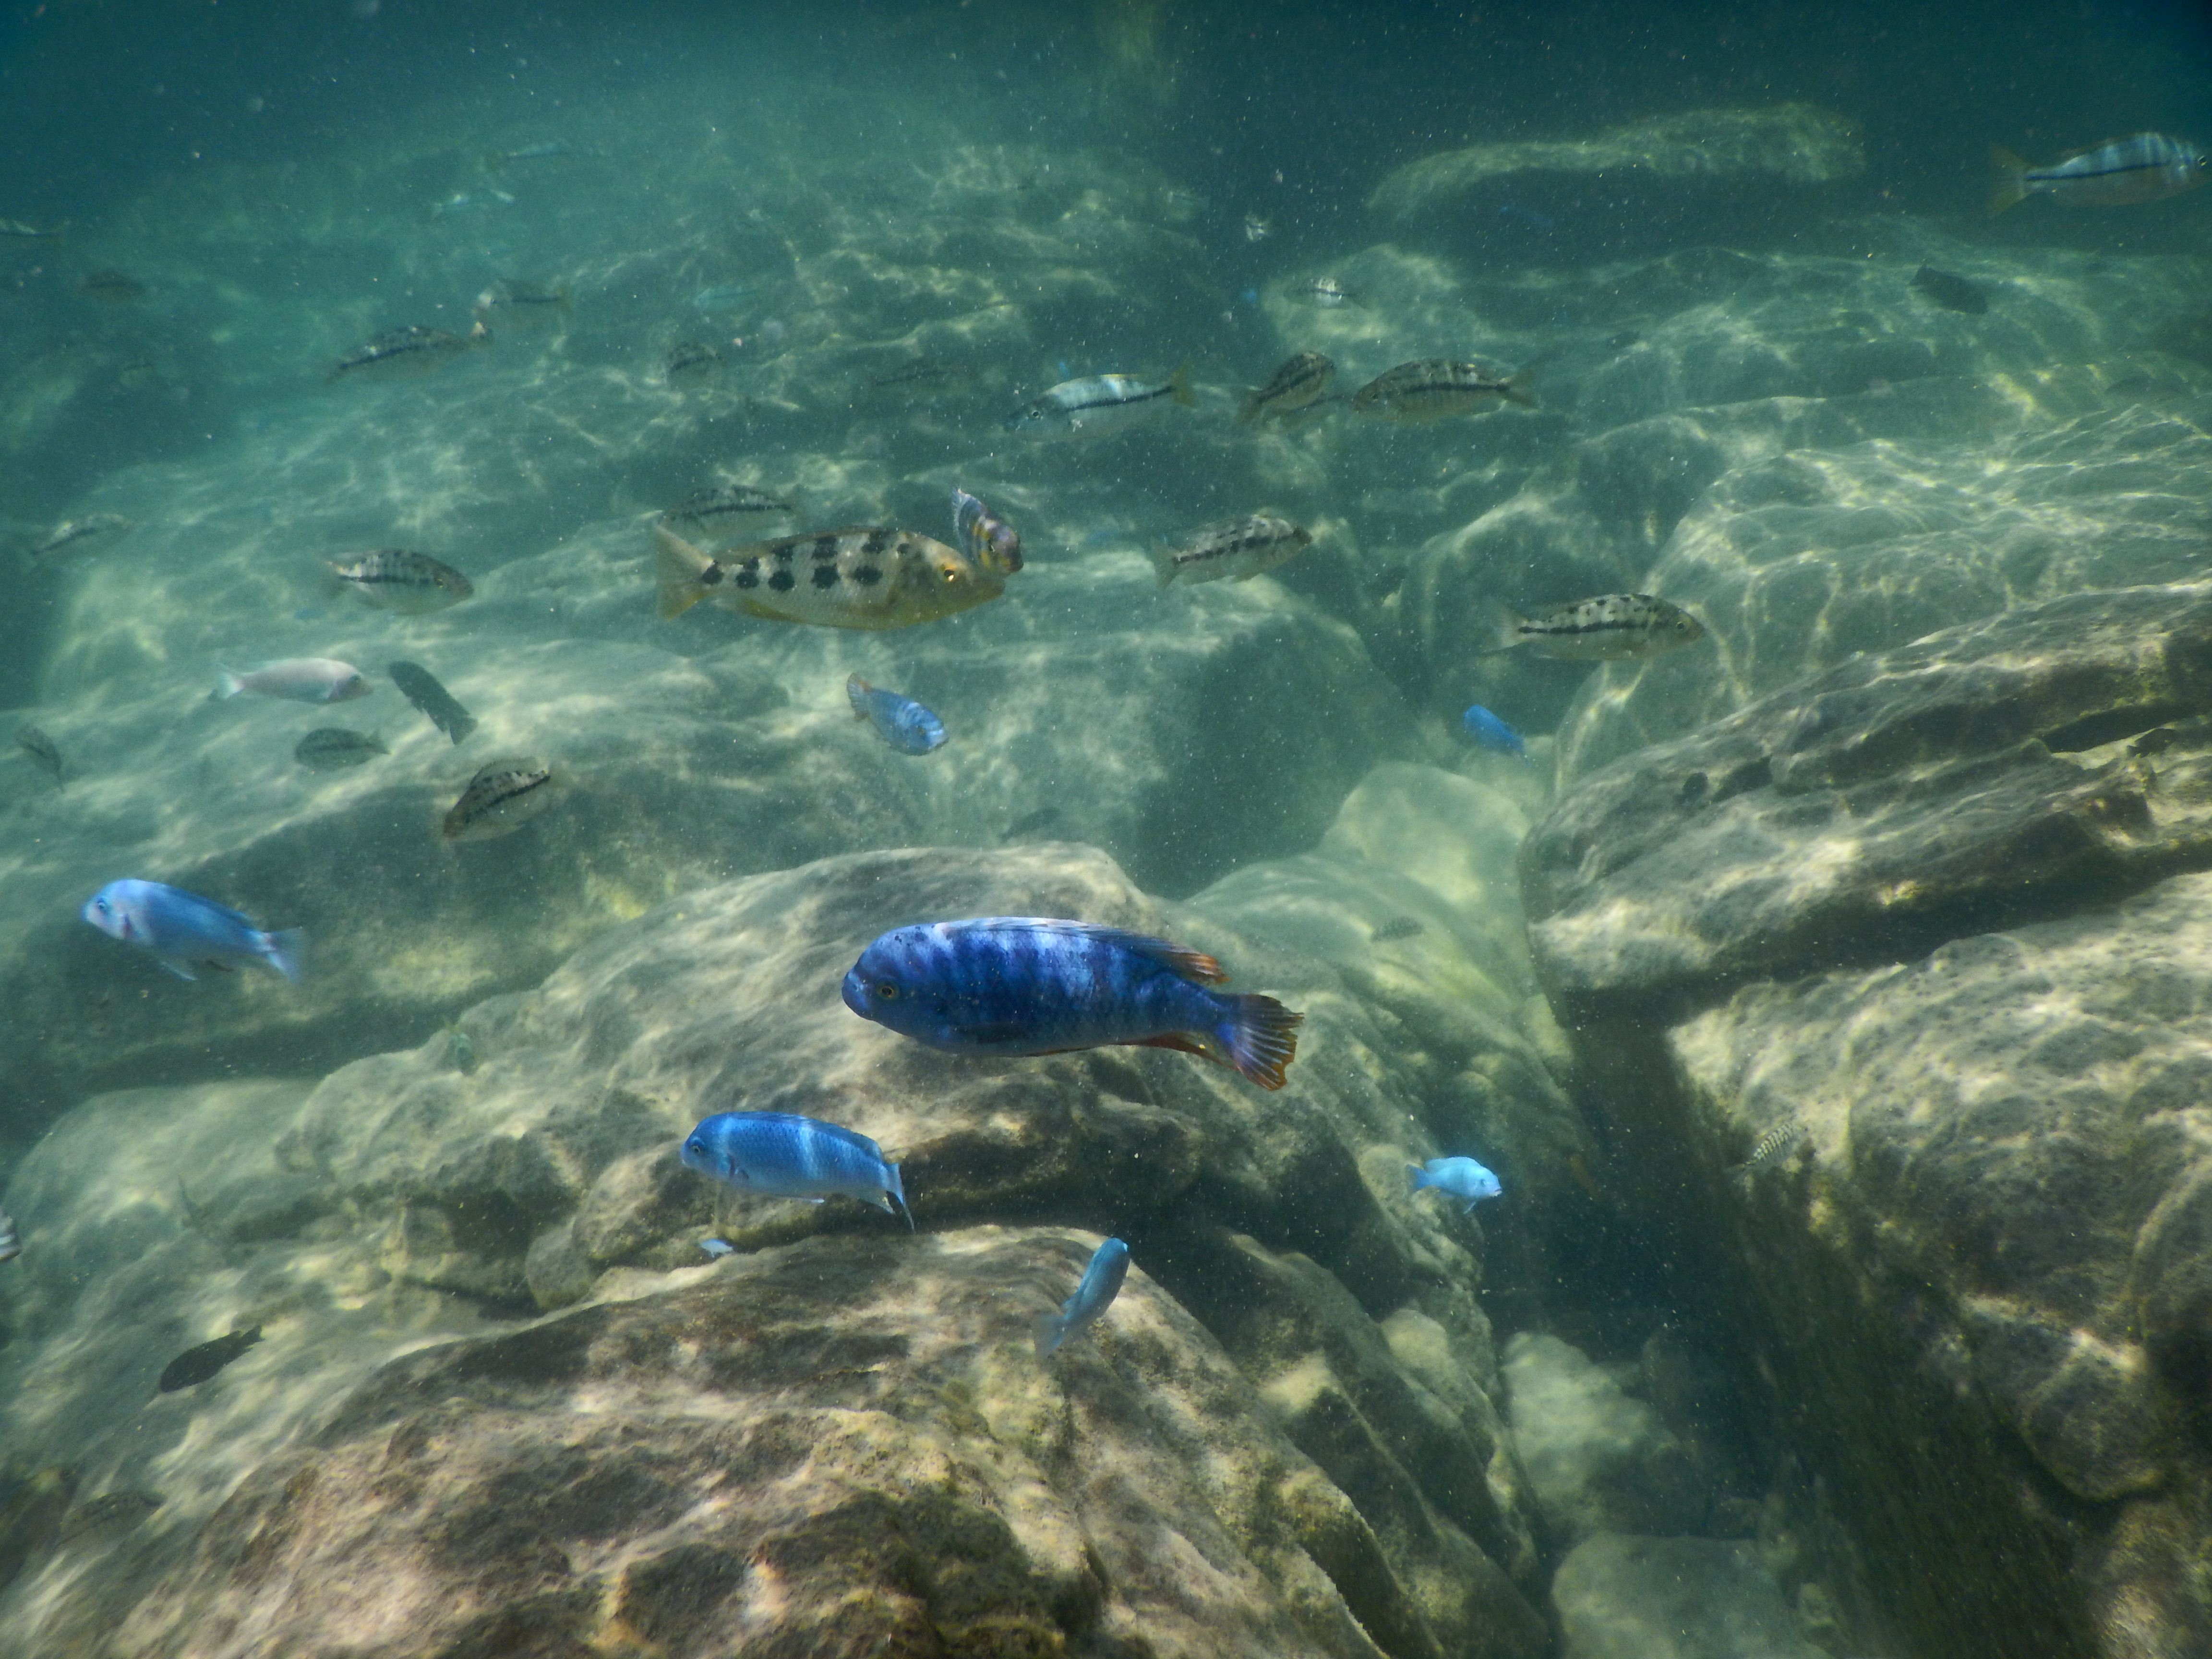 Boat trip and snorkeling - 6h00